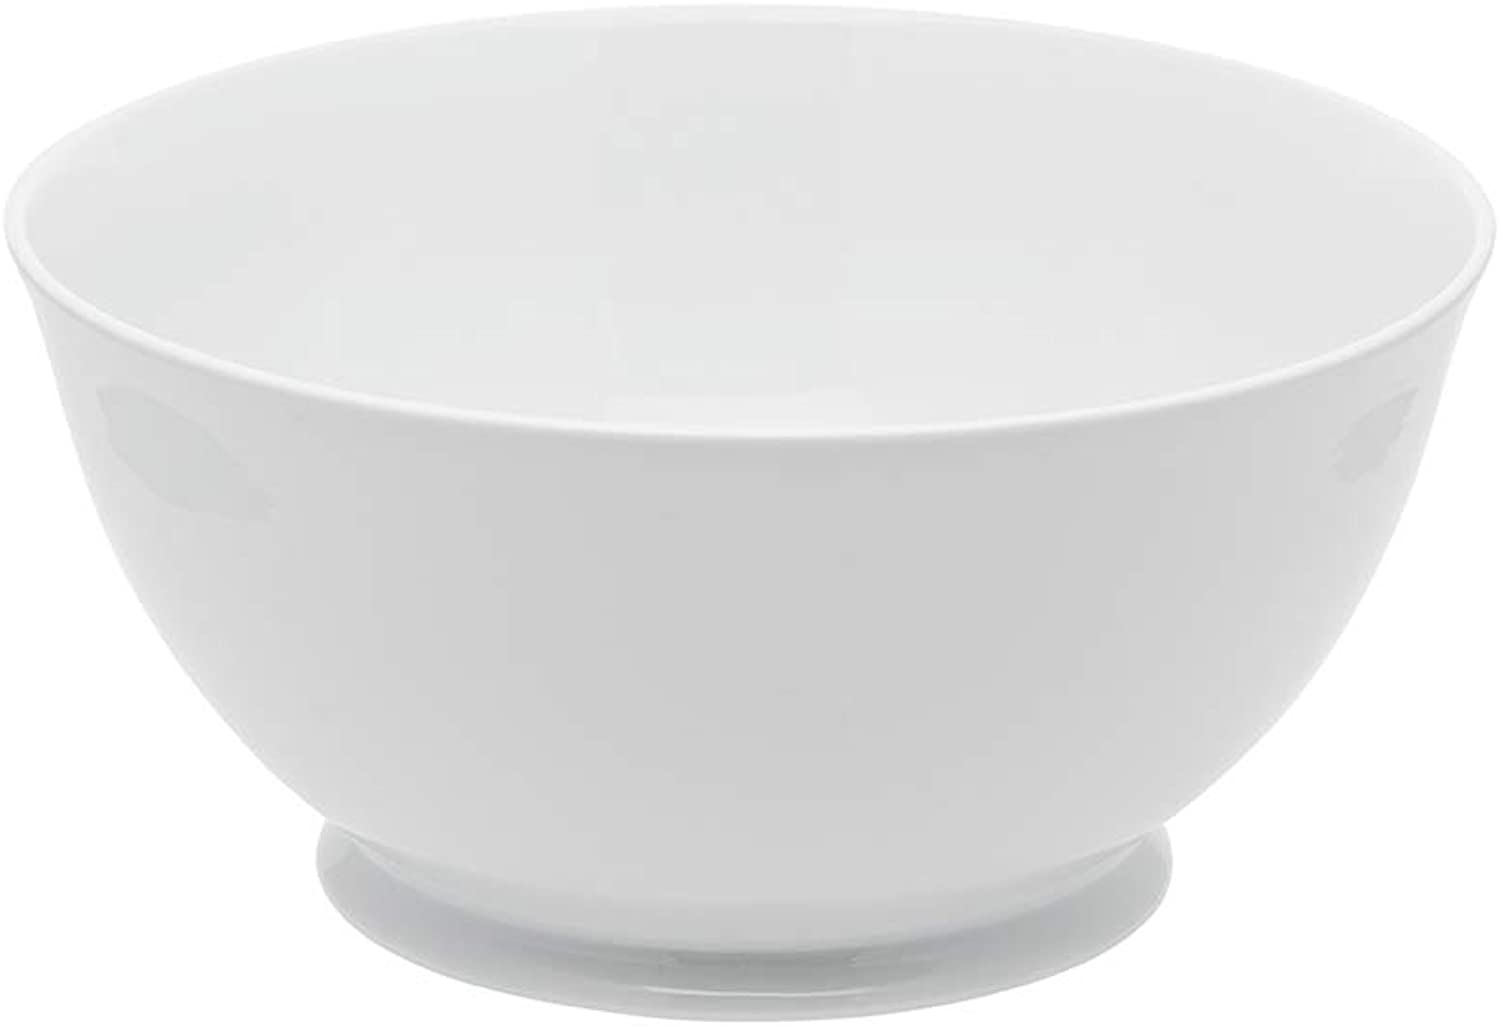 DEGRENNE 227841 Collection L Saladier rond 25 cm, Blanc